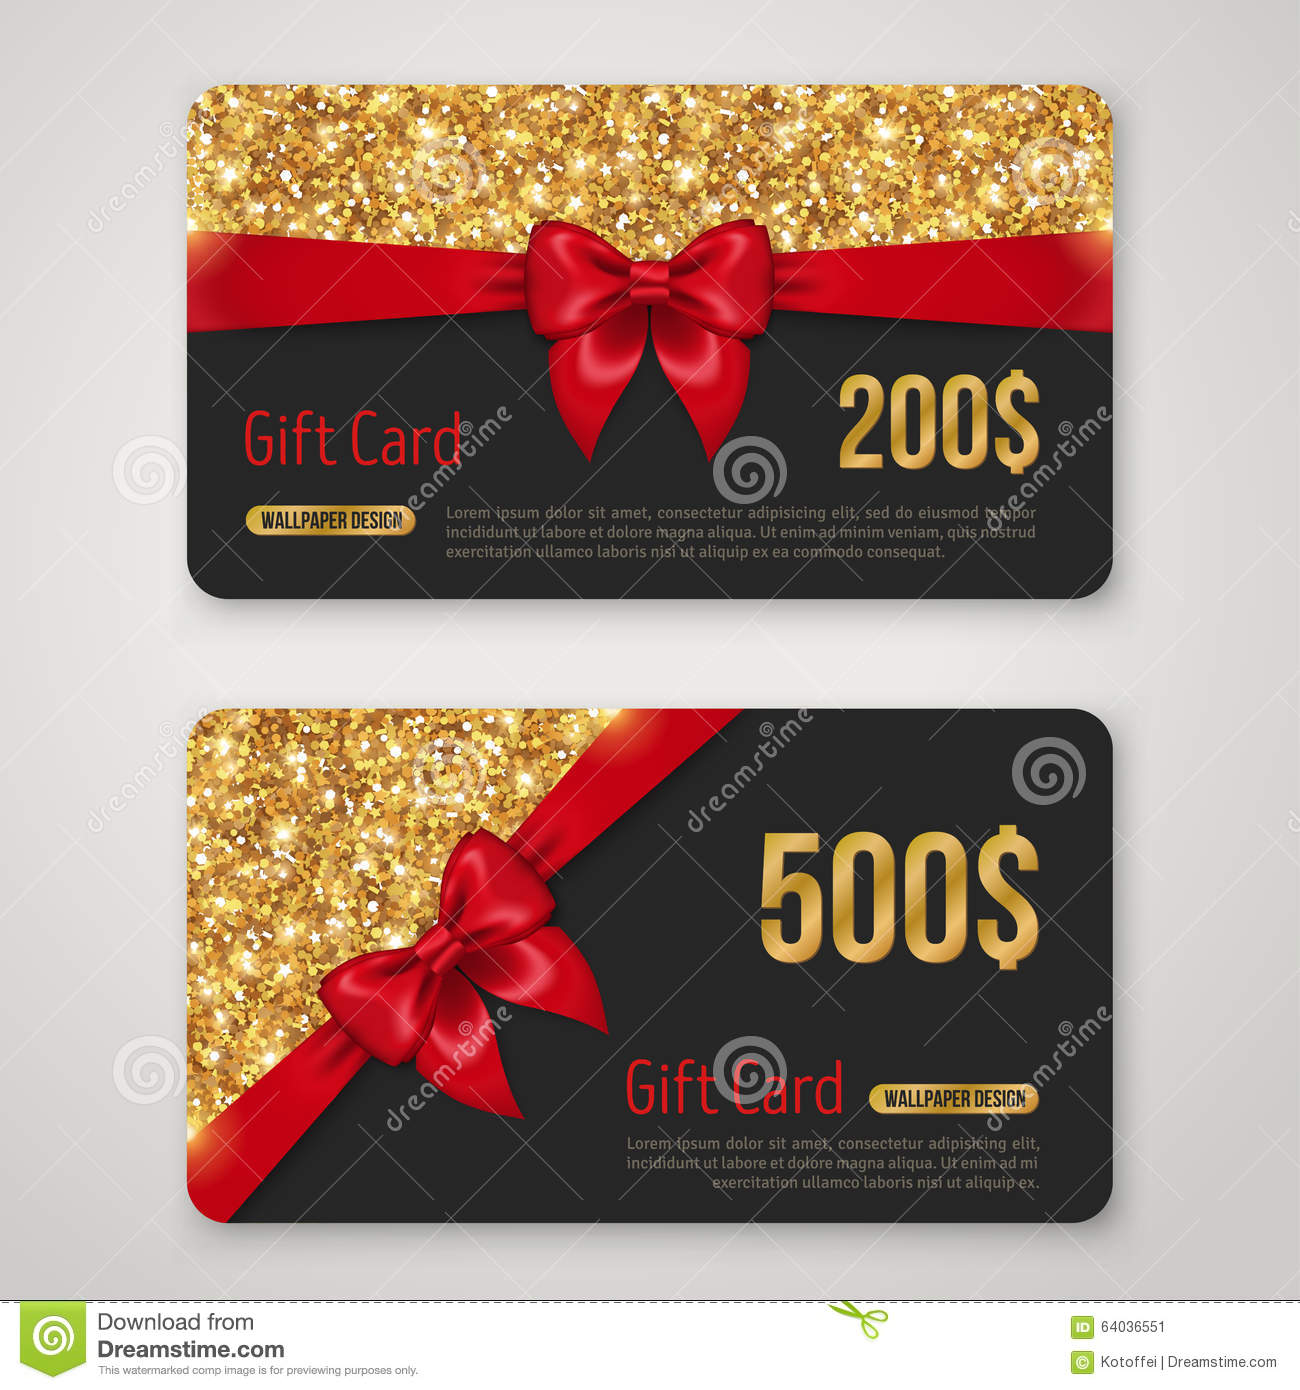 Stunning Gift Card Design Ideas Photos - Trend Interior Design ...